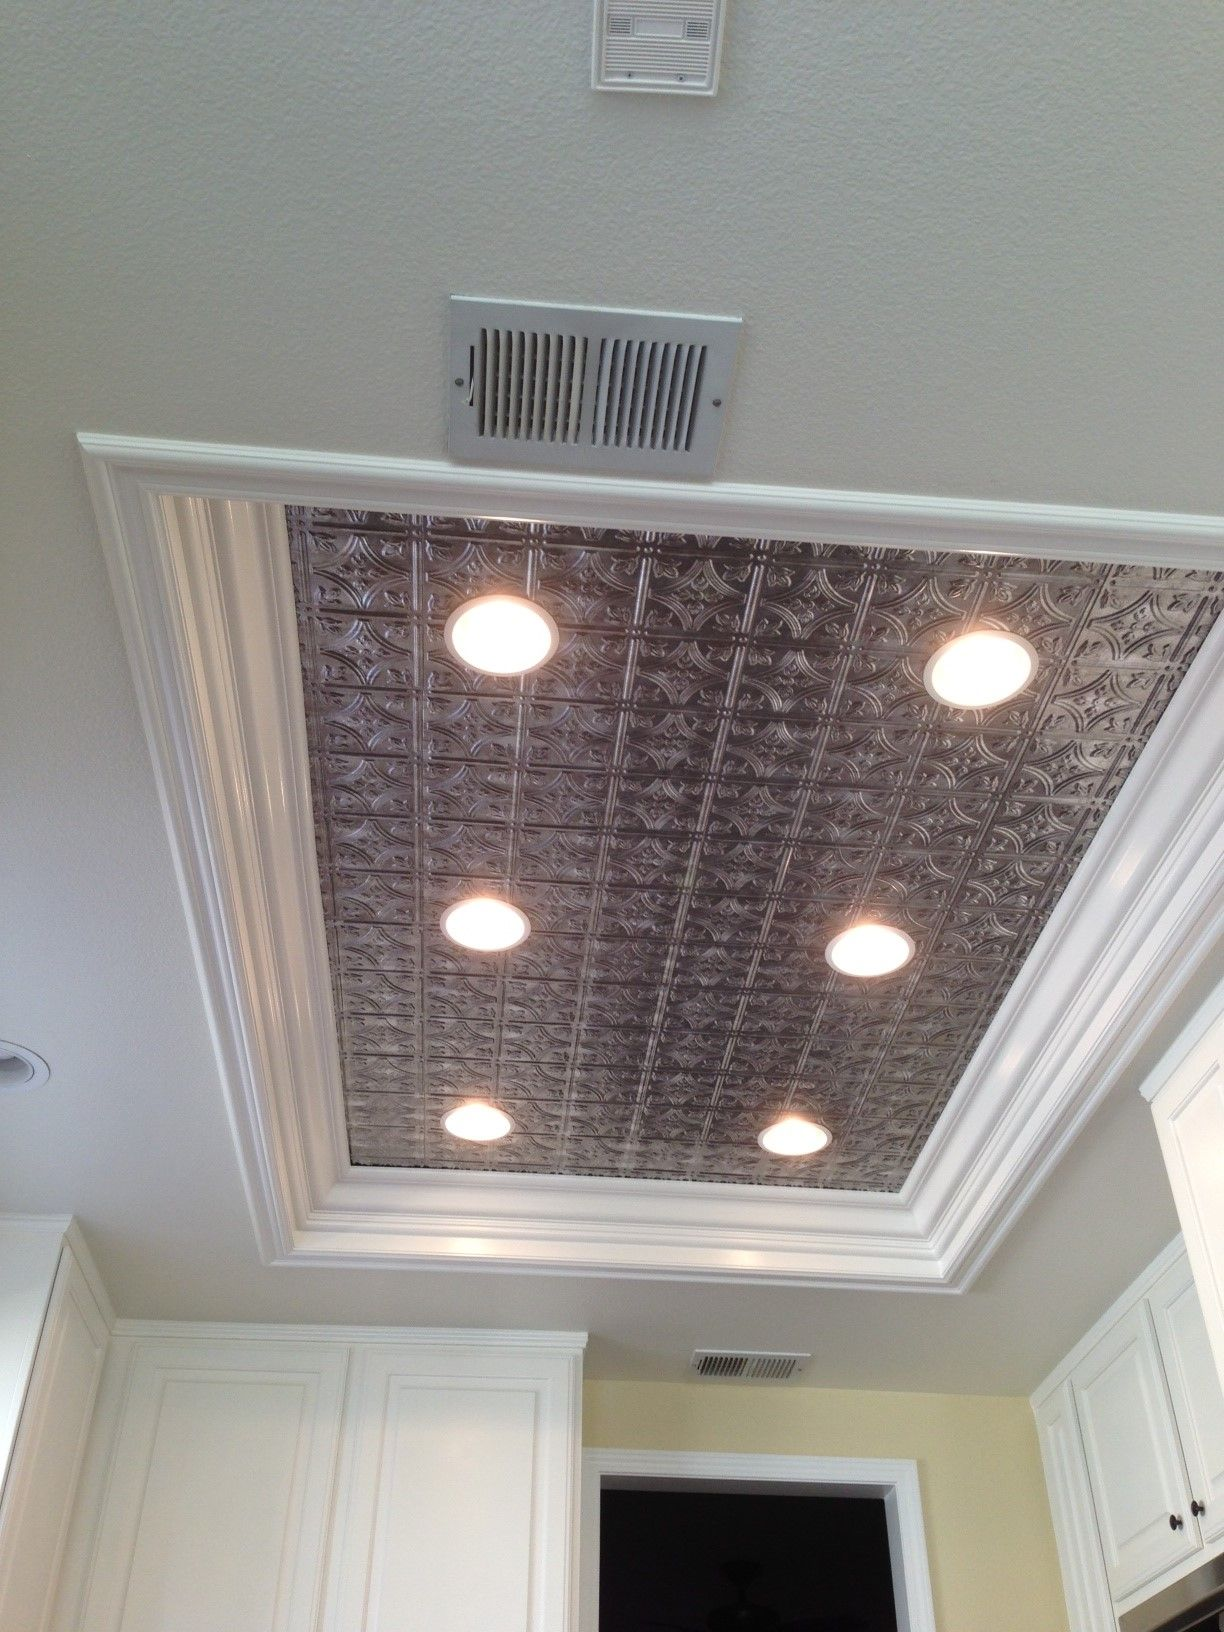 Fluorescent Kitchen Light Covers Remodel Flourescent Light Box In Kitchen We Also Replaced The